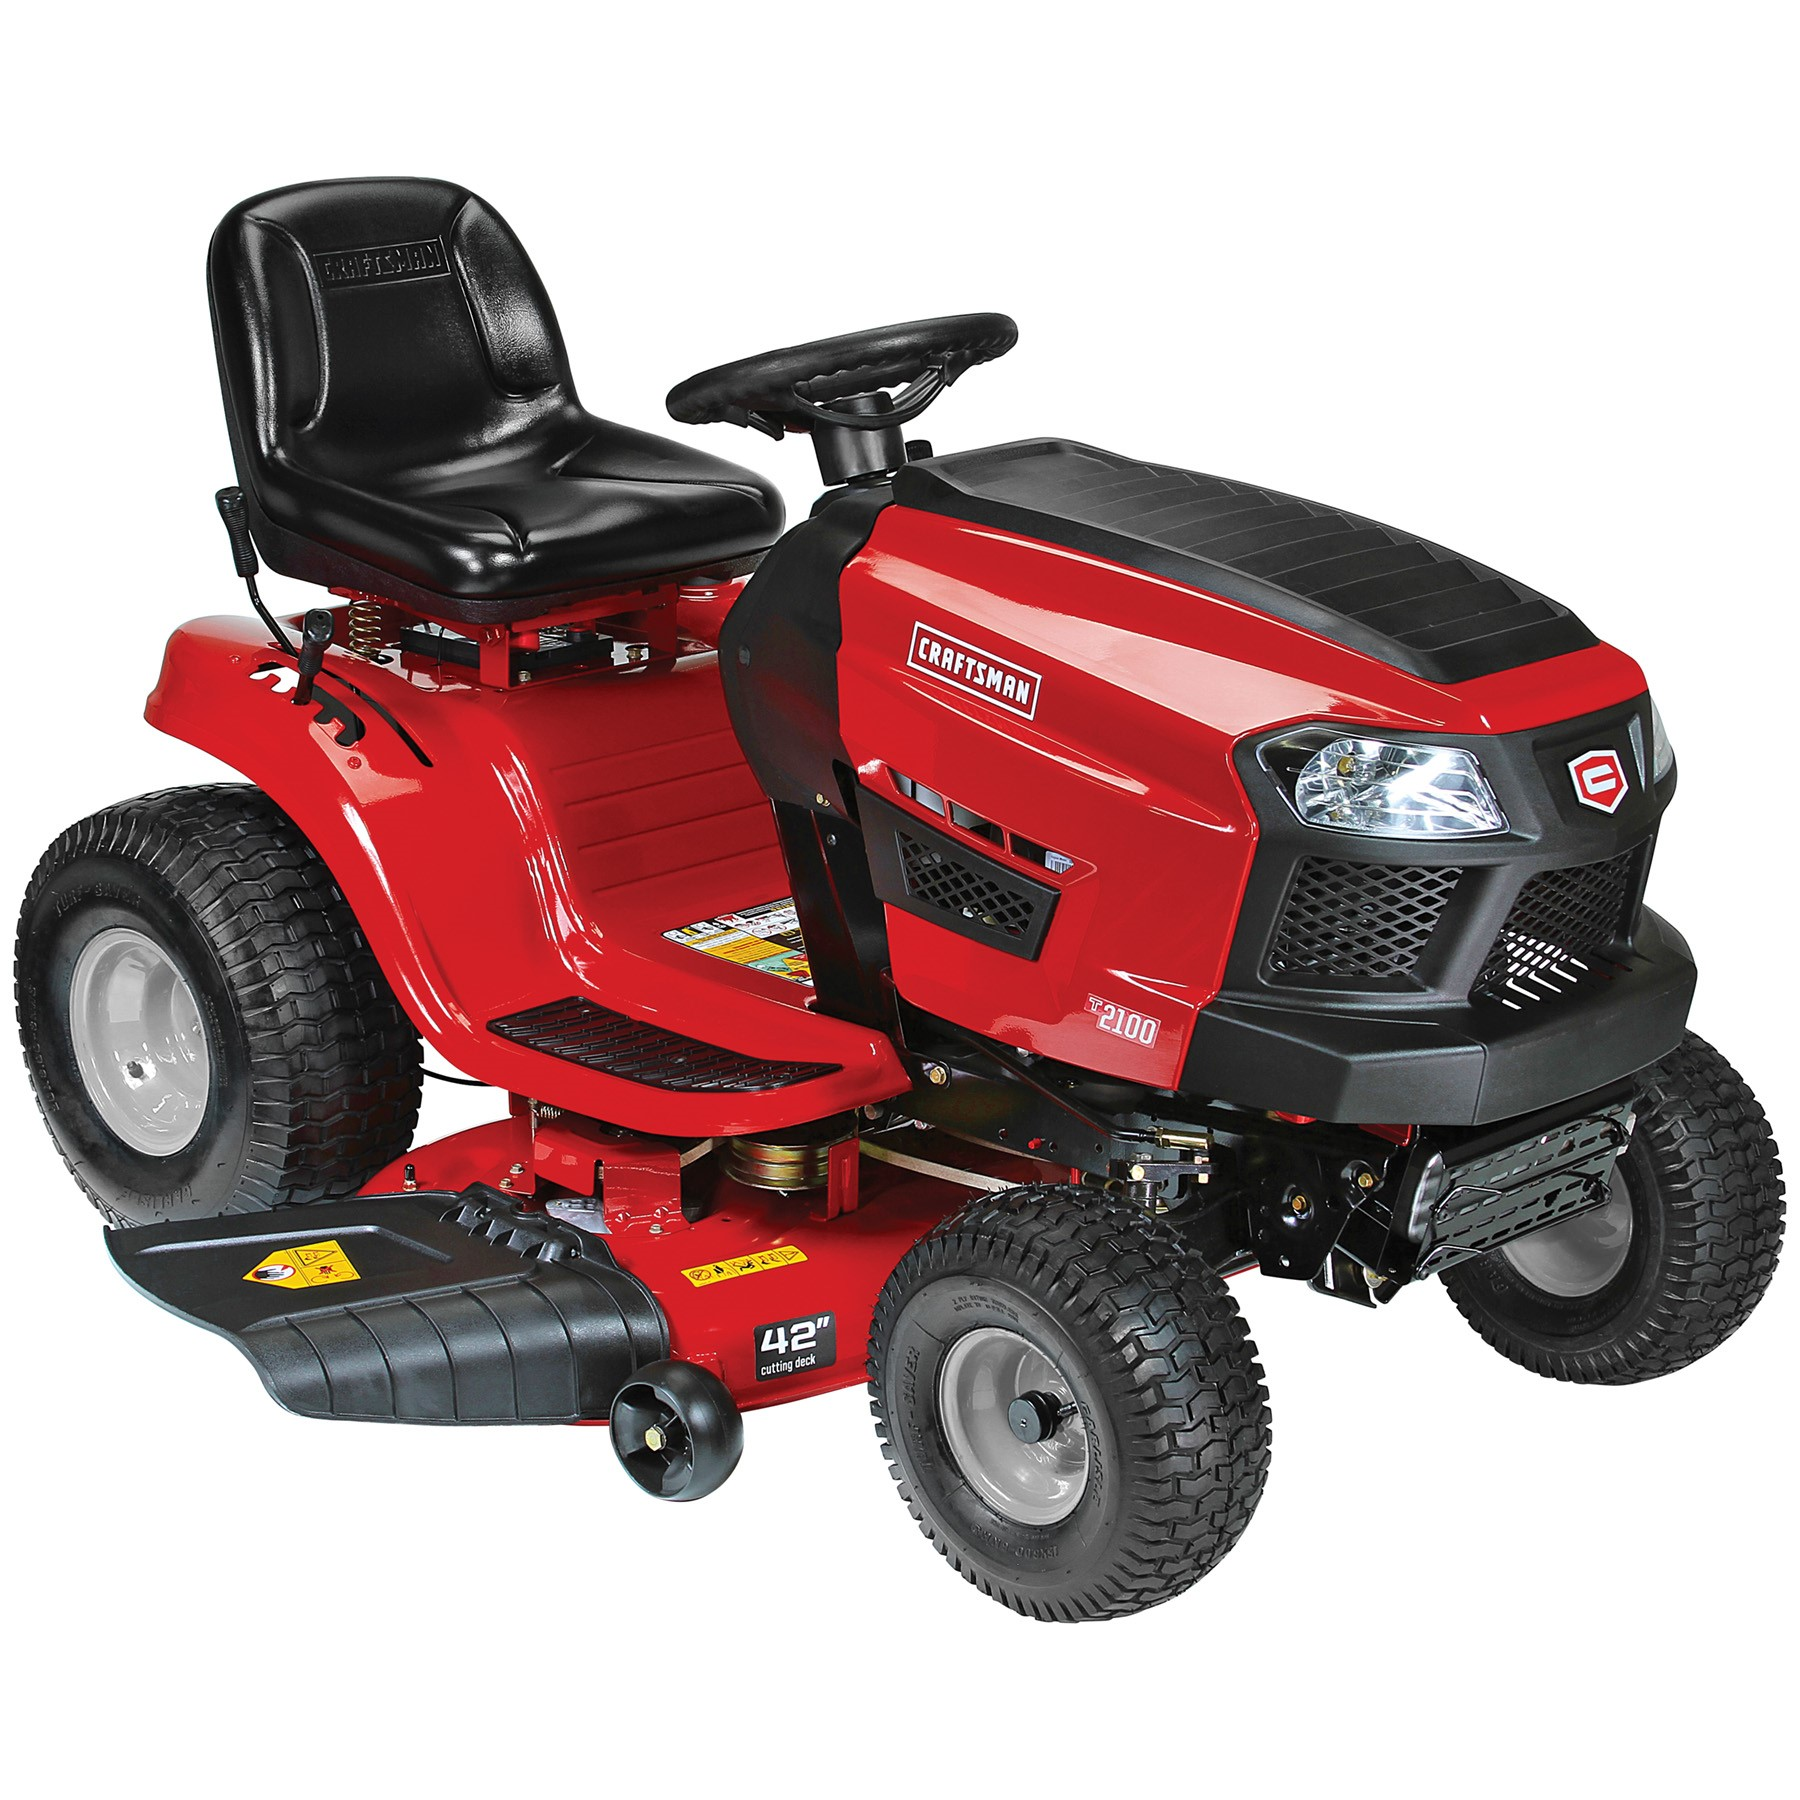 medium resolution of craftsman 25587 42 19 hp briggs stratton fender hydro automatic riding mower